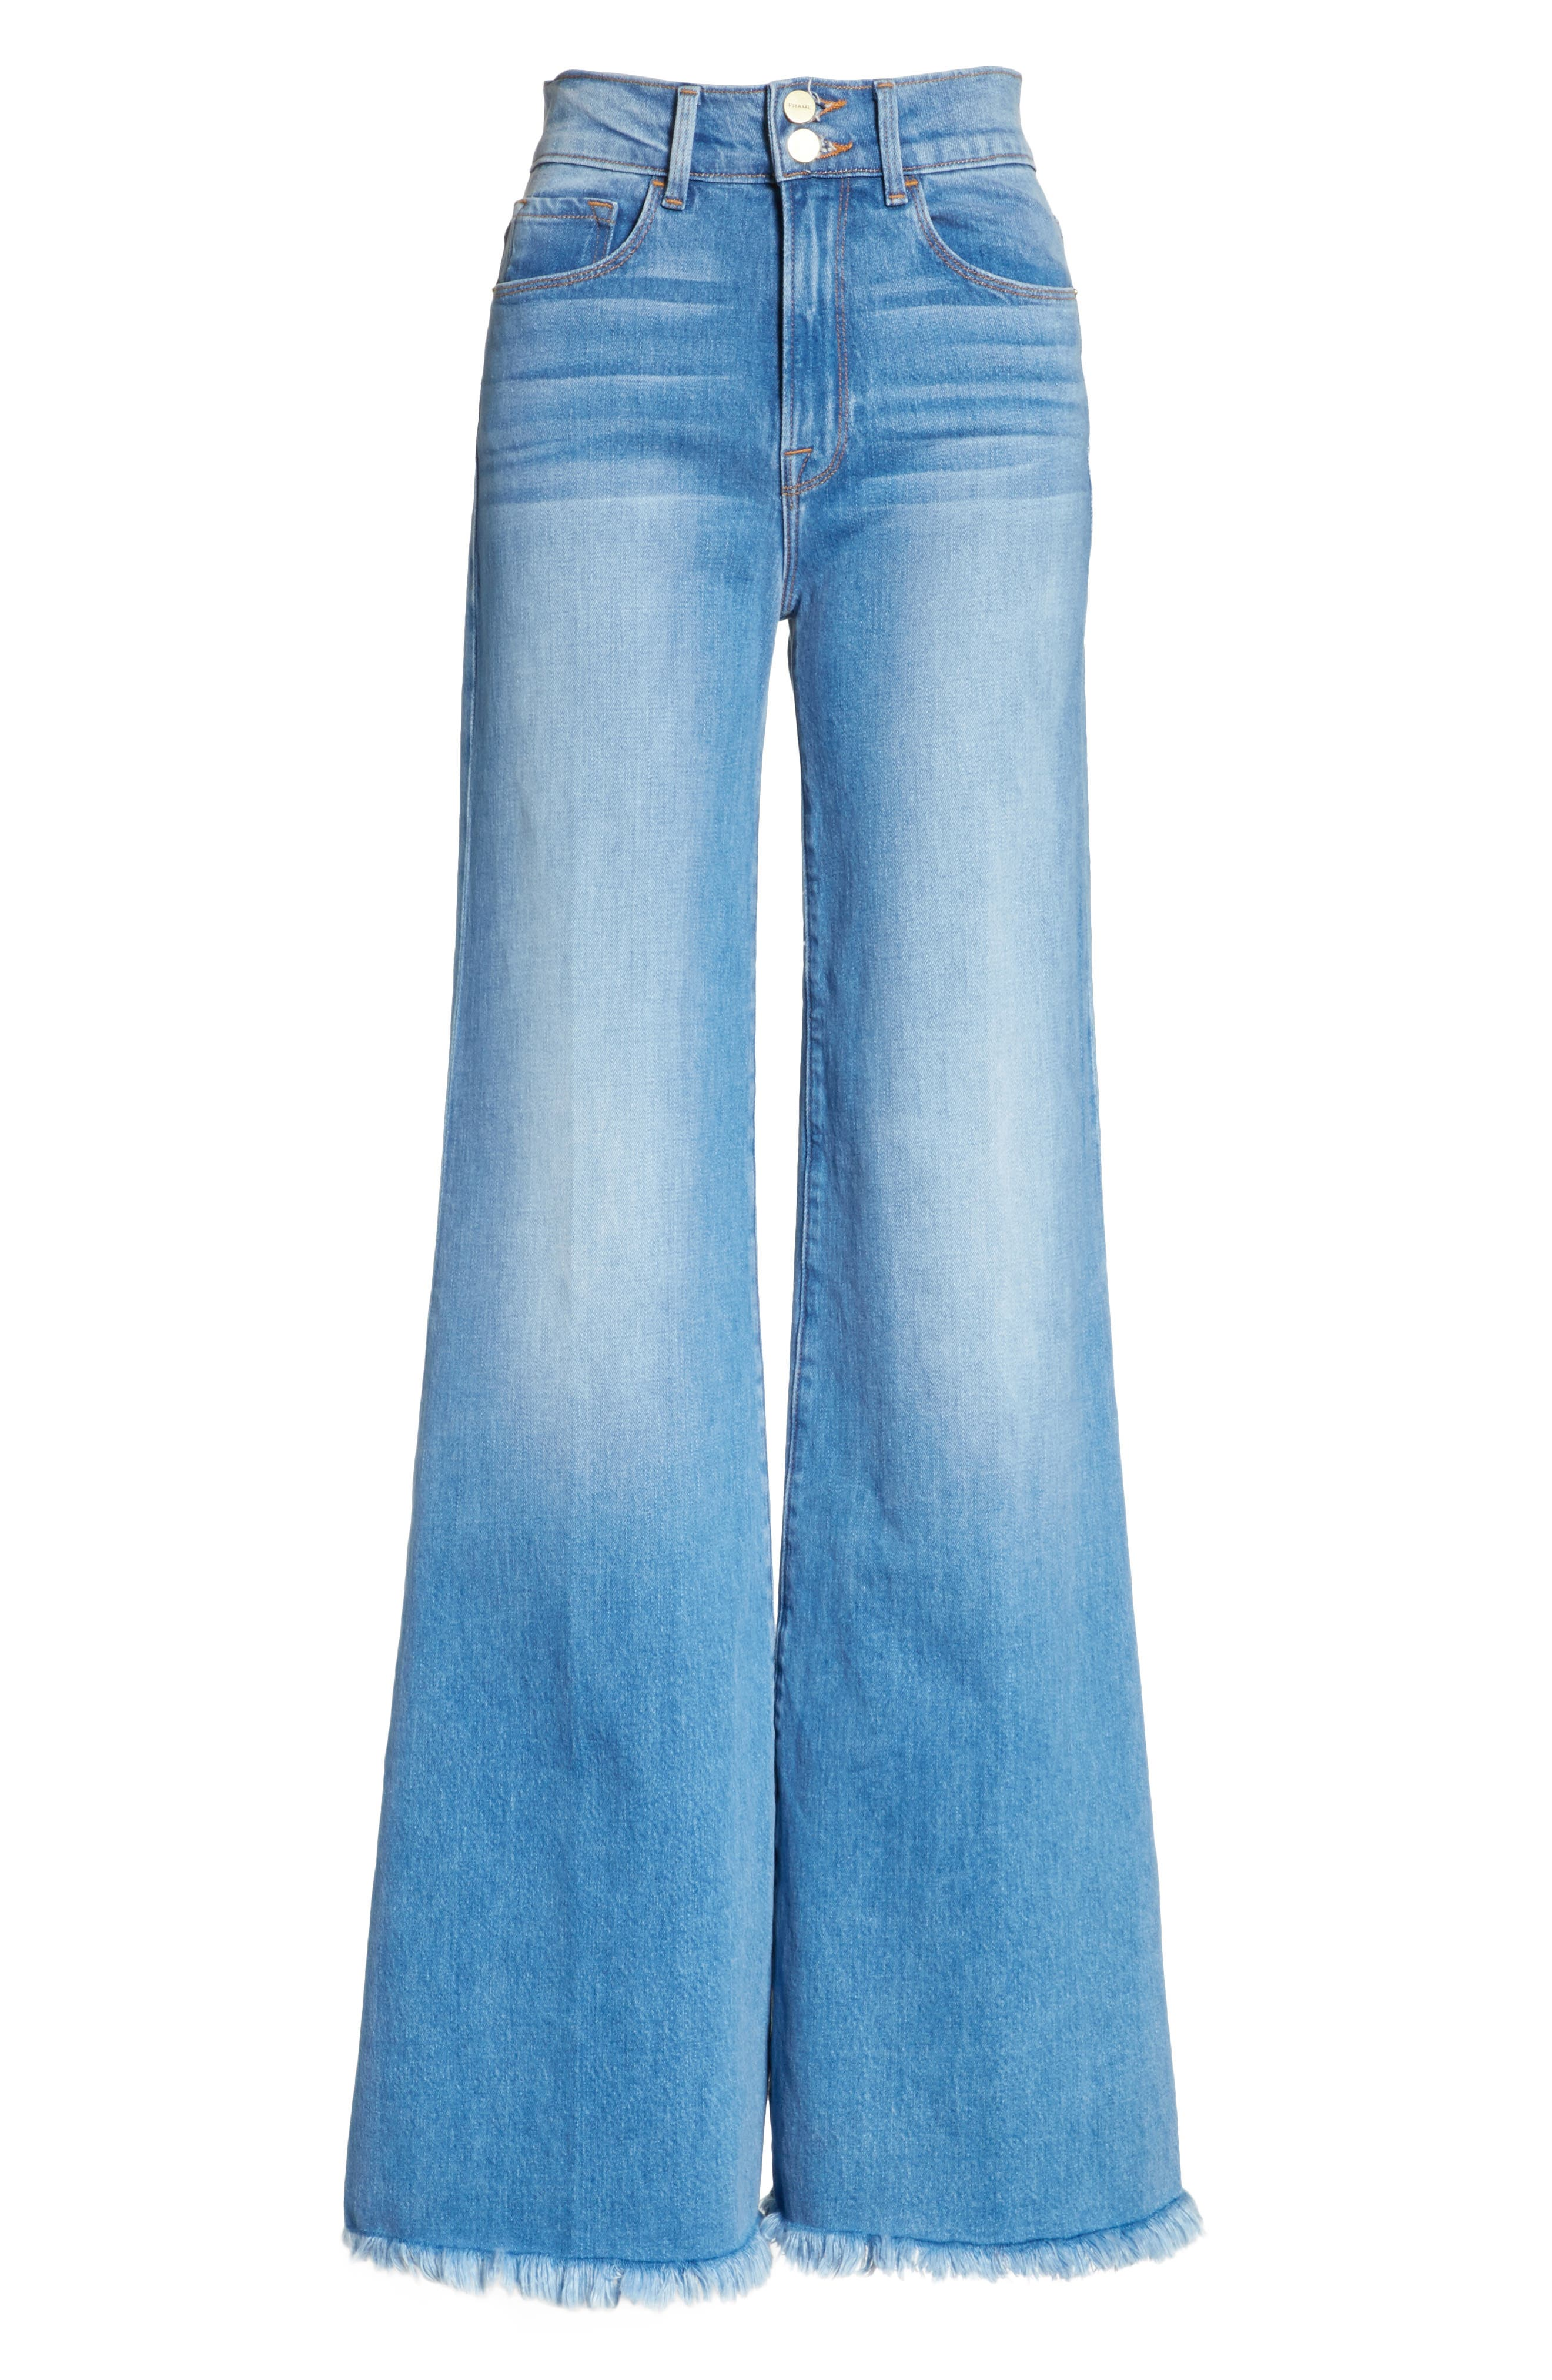 Le Palazzo High Waist Raw Edge Jeans,                             Alternate thumbnail 6, color,